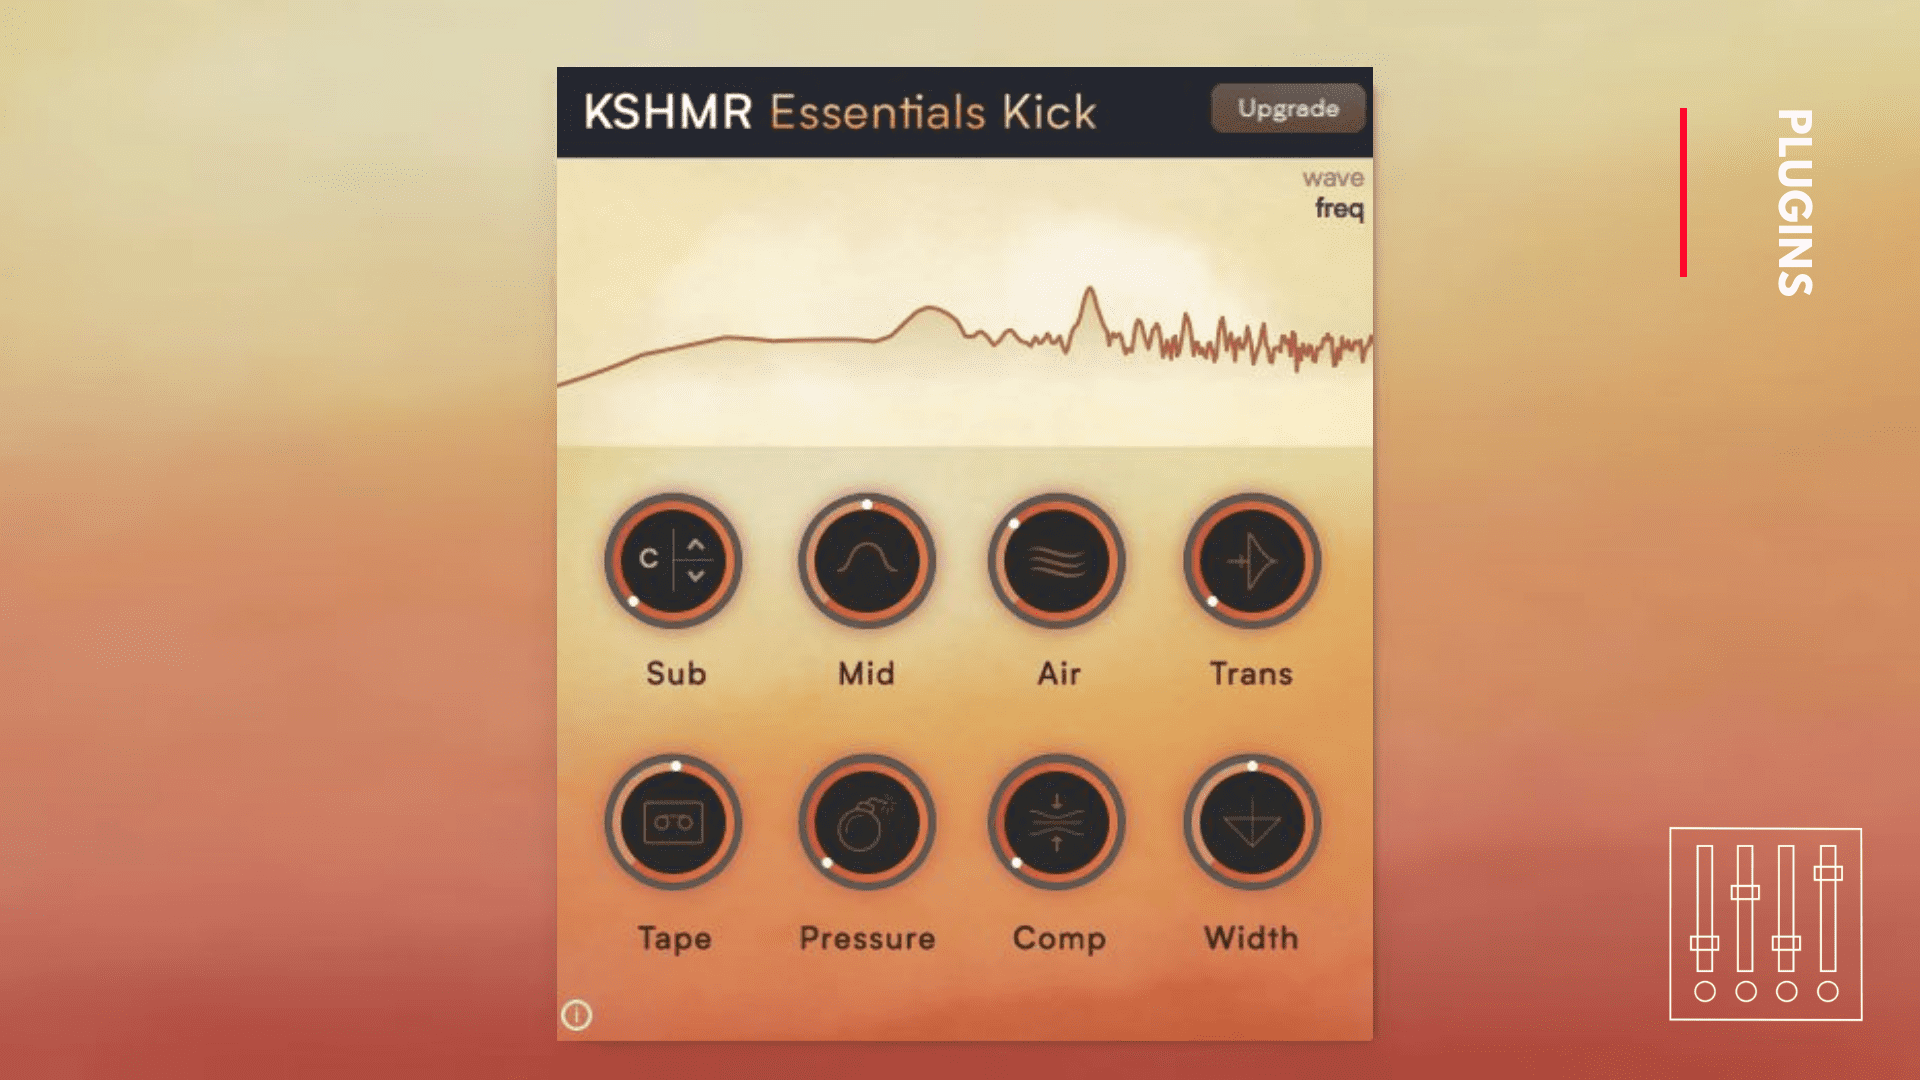 KSHMR Essentials Kick Plugin